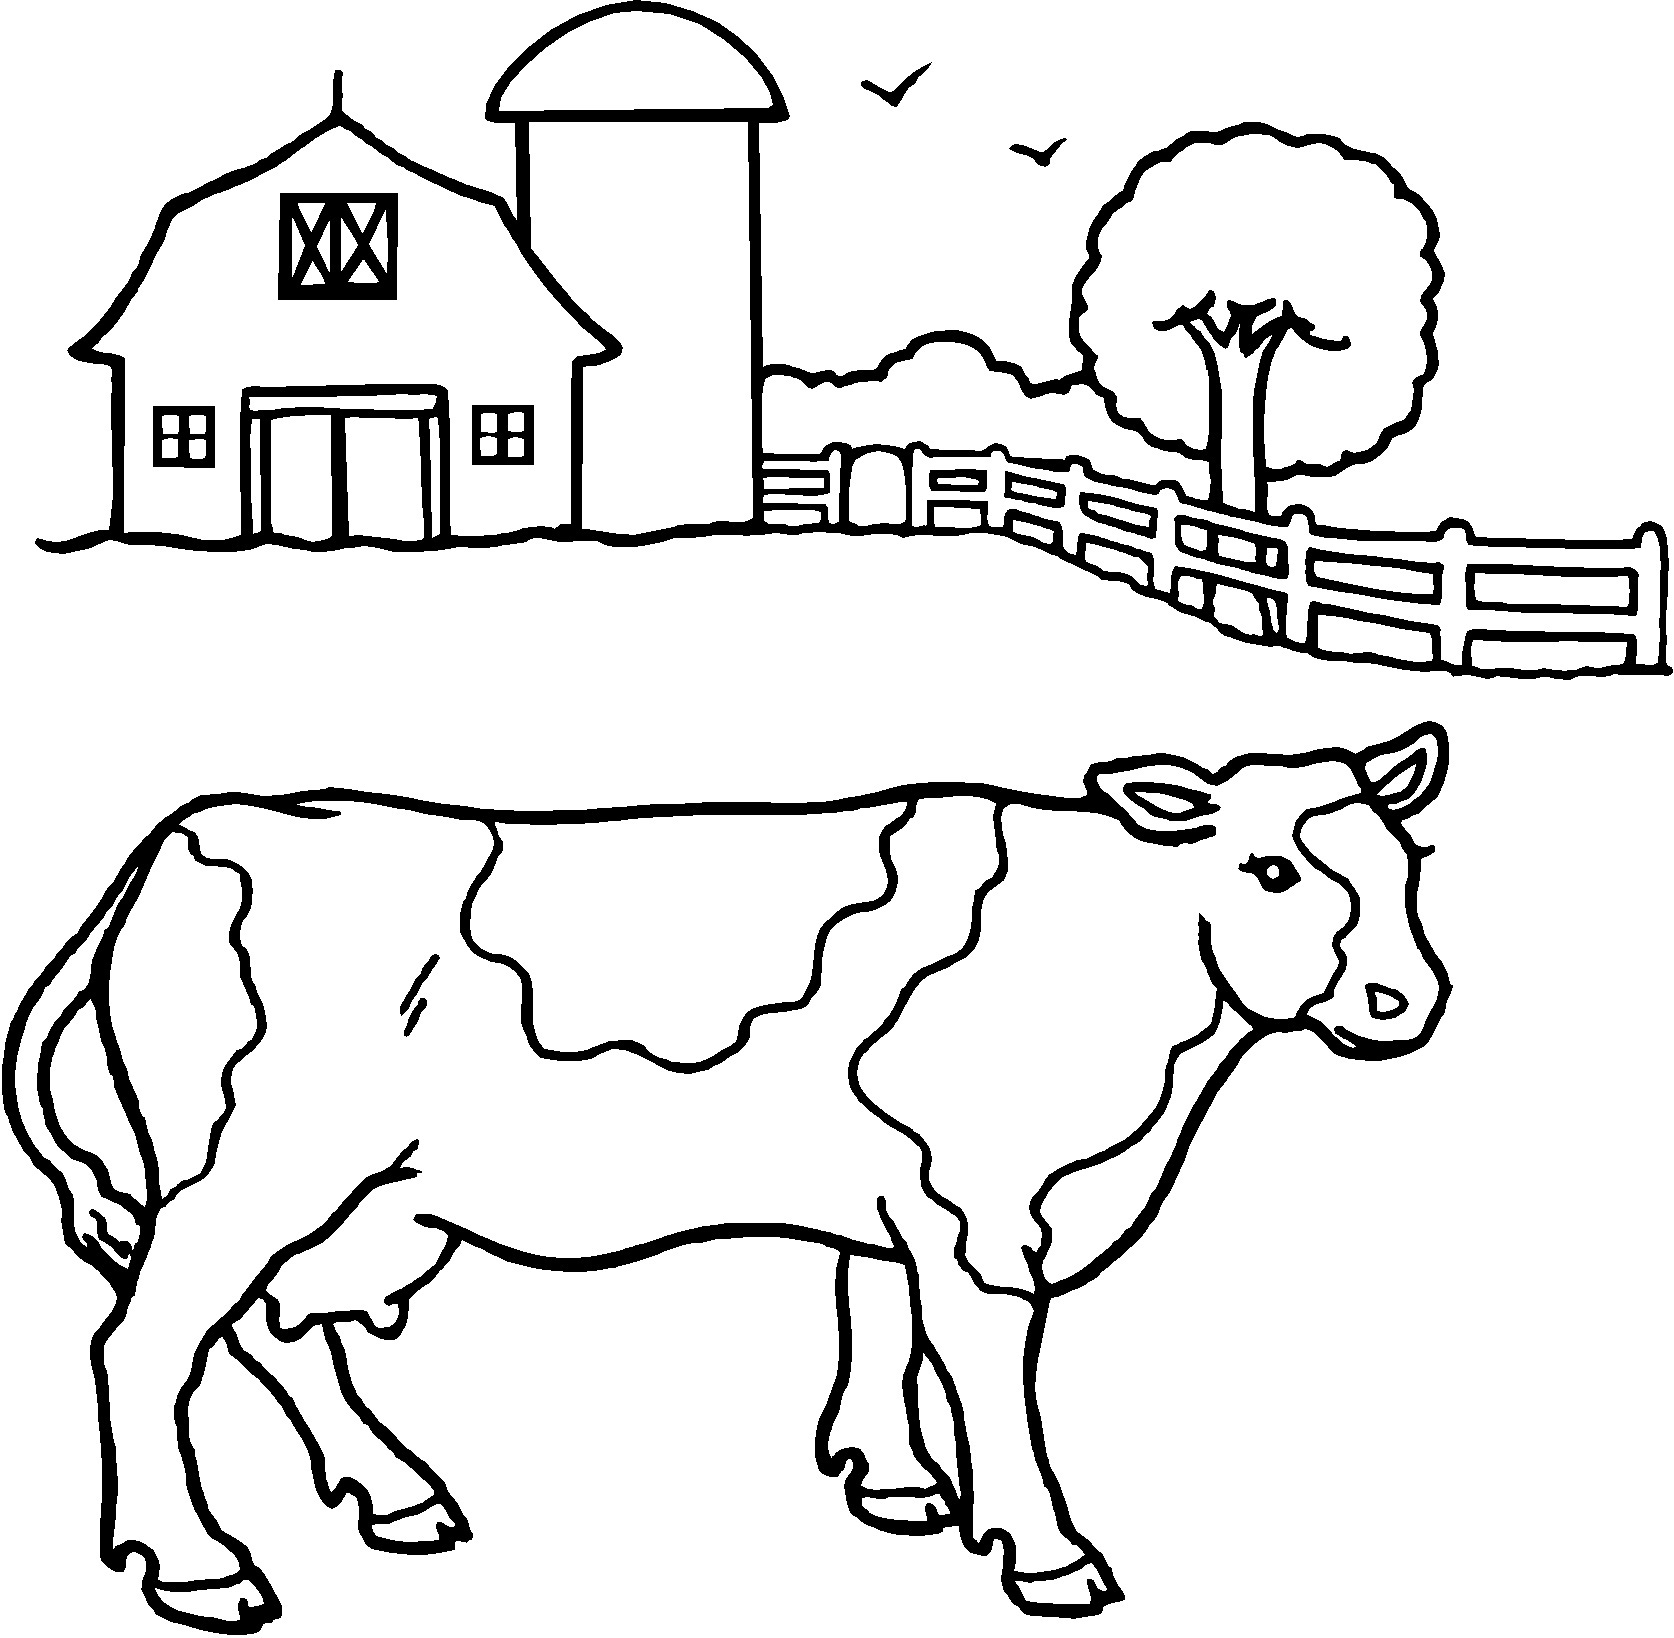 Coloring Pages Coloring Pages Of A Cow printable cow coloring pages me sheets